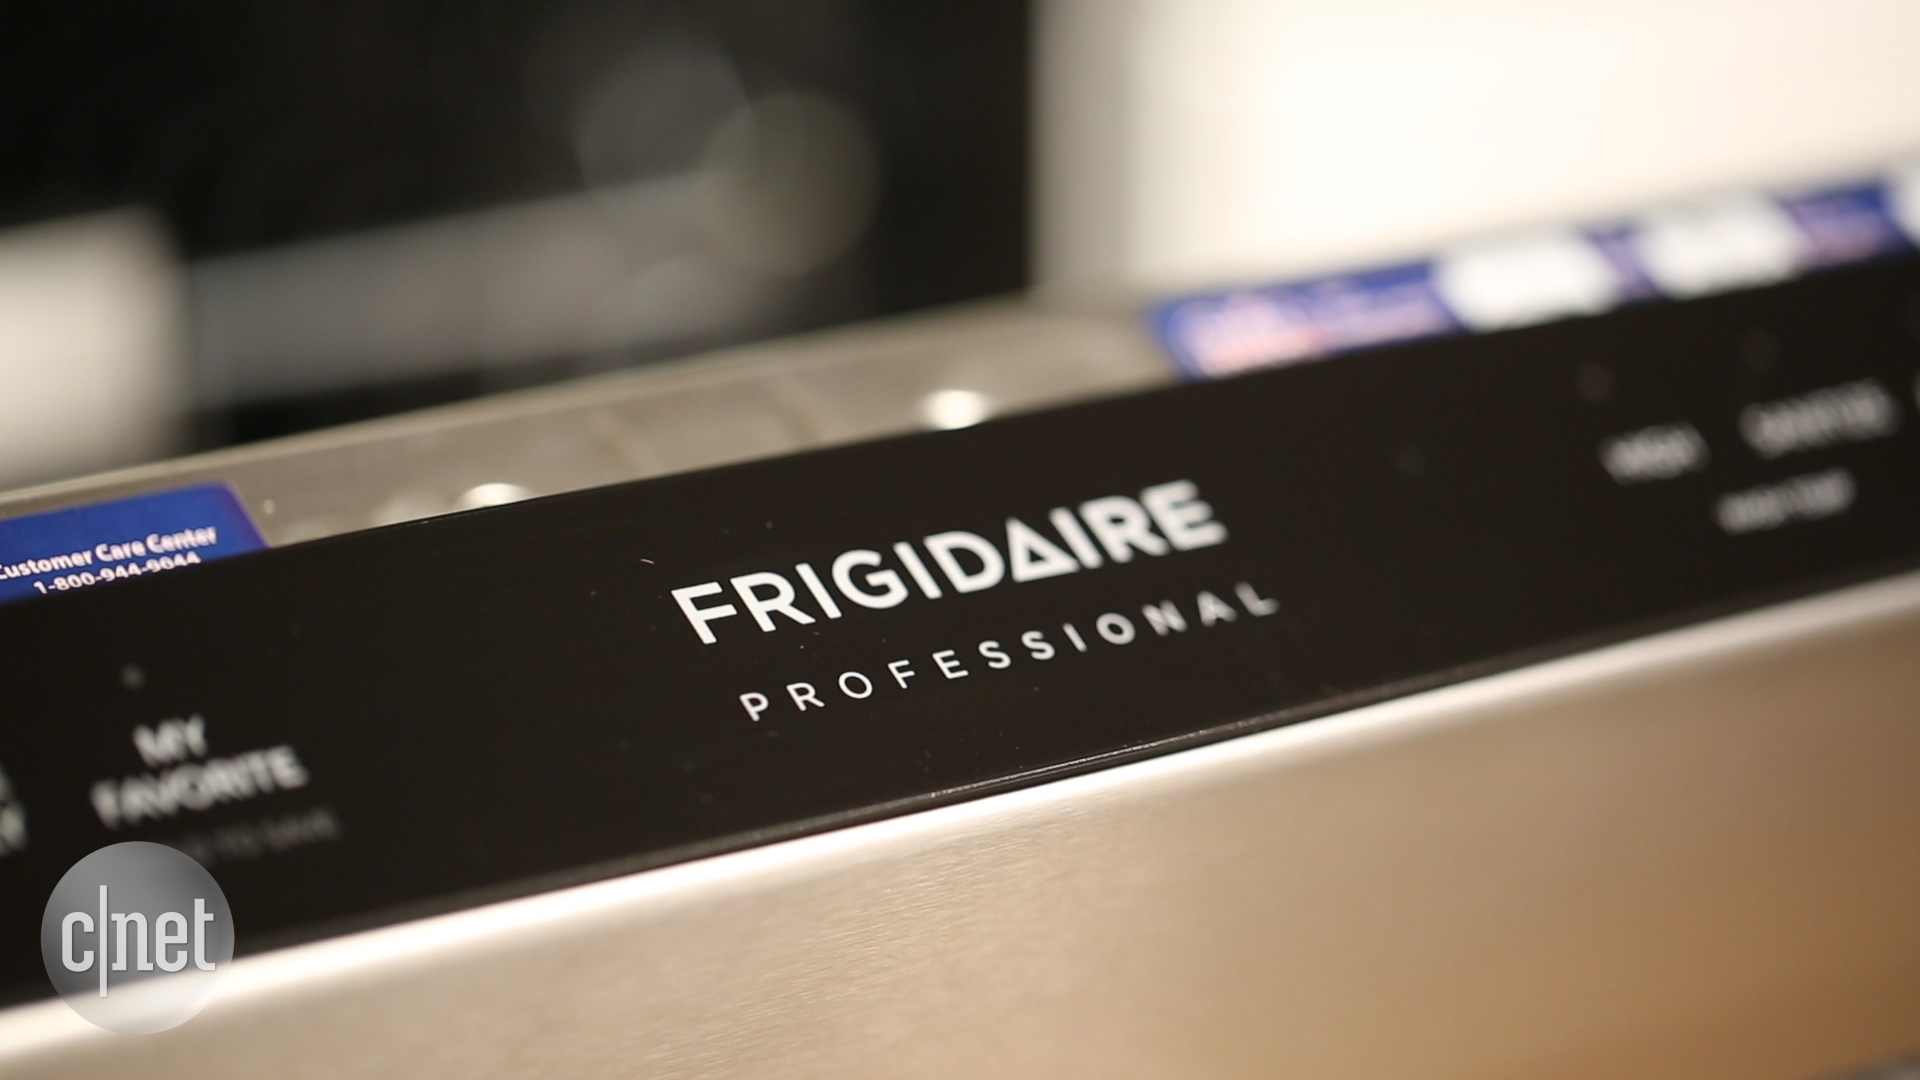 Video: Try as it might, this Frigidaire dishwasher can't keep food down